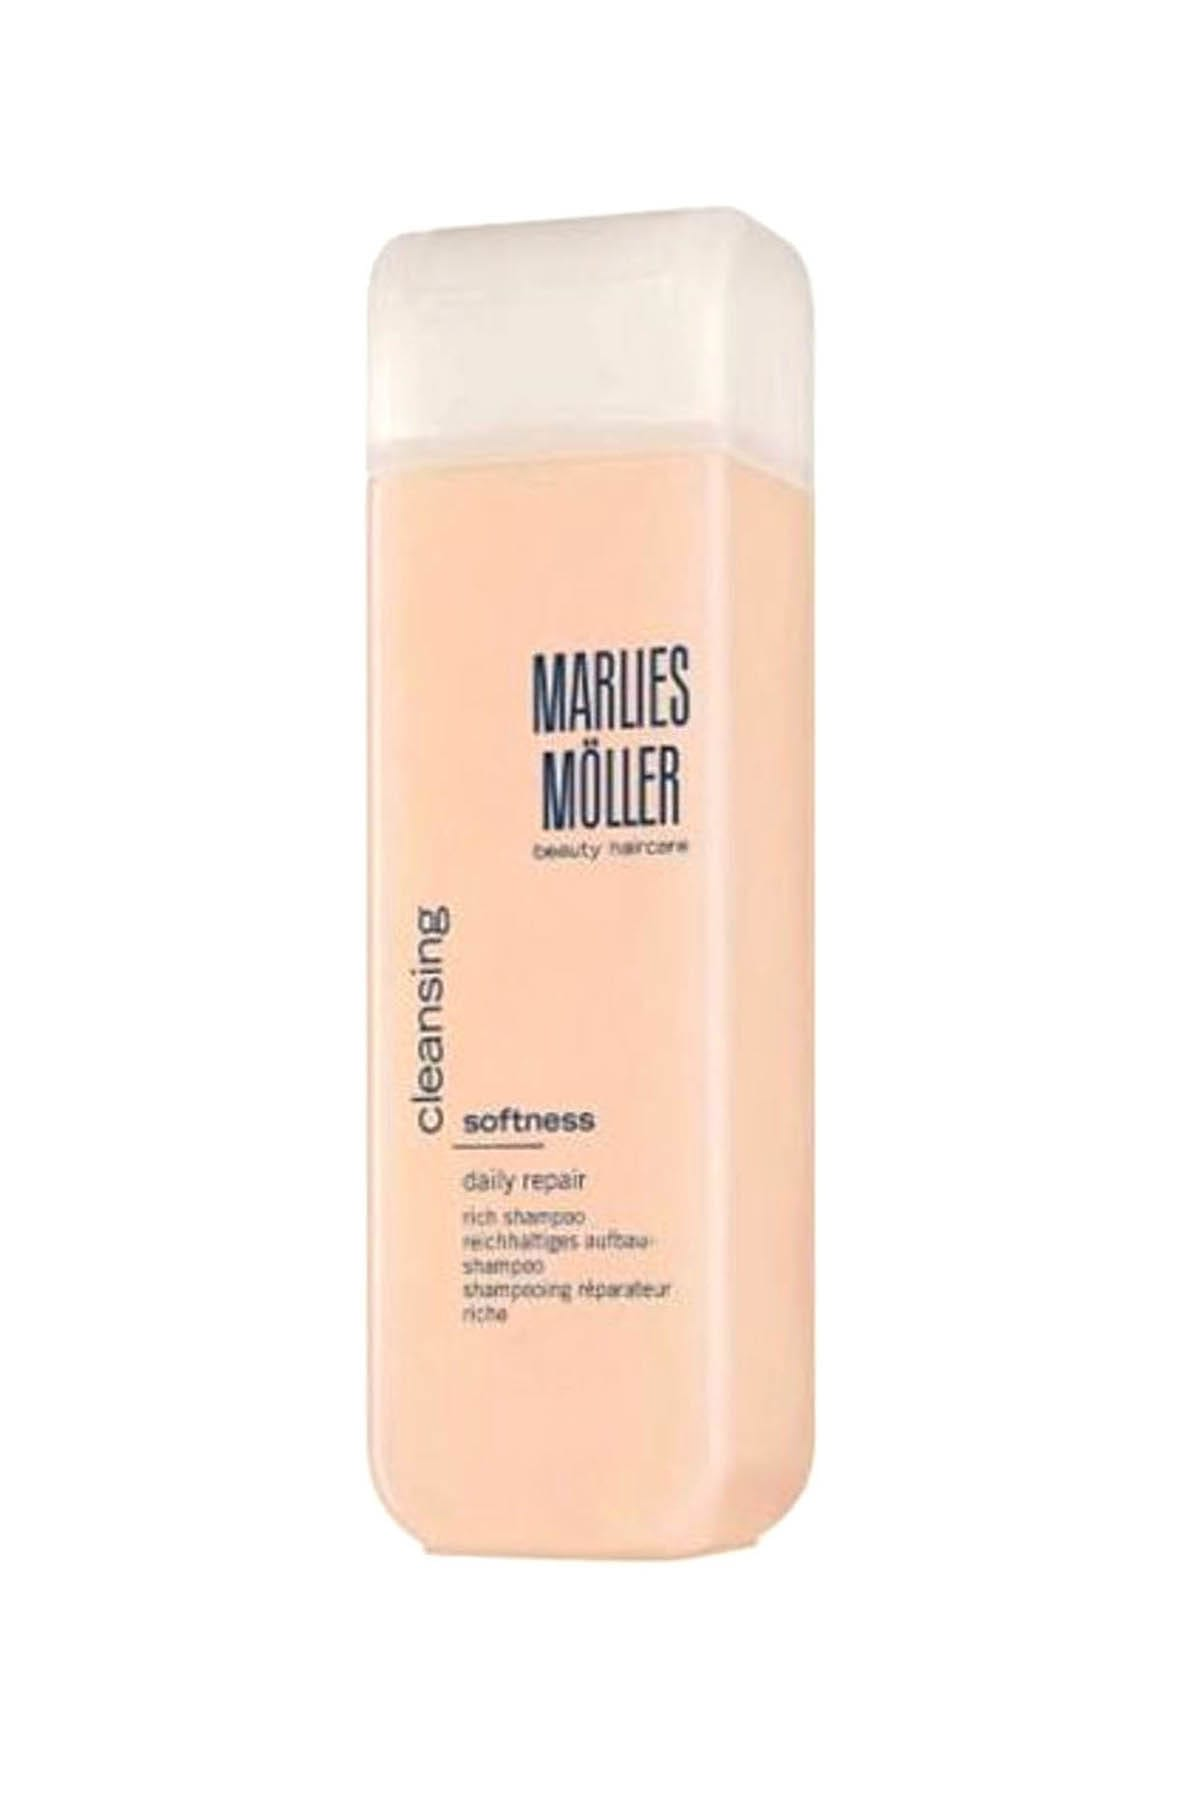 Marlies Moller Cleansing Softness Daily Repair Rich Shampoo 200ml